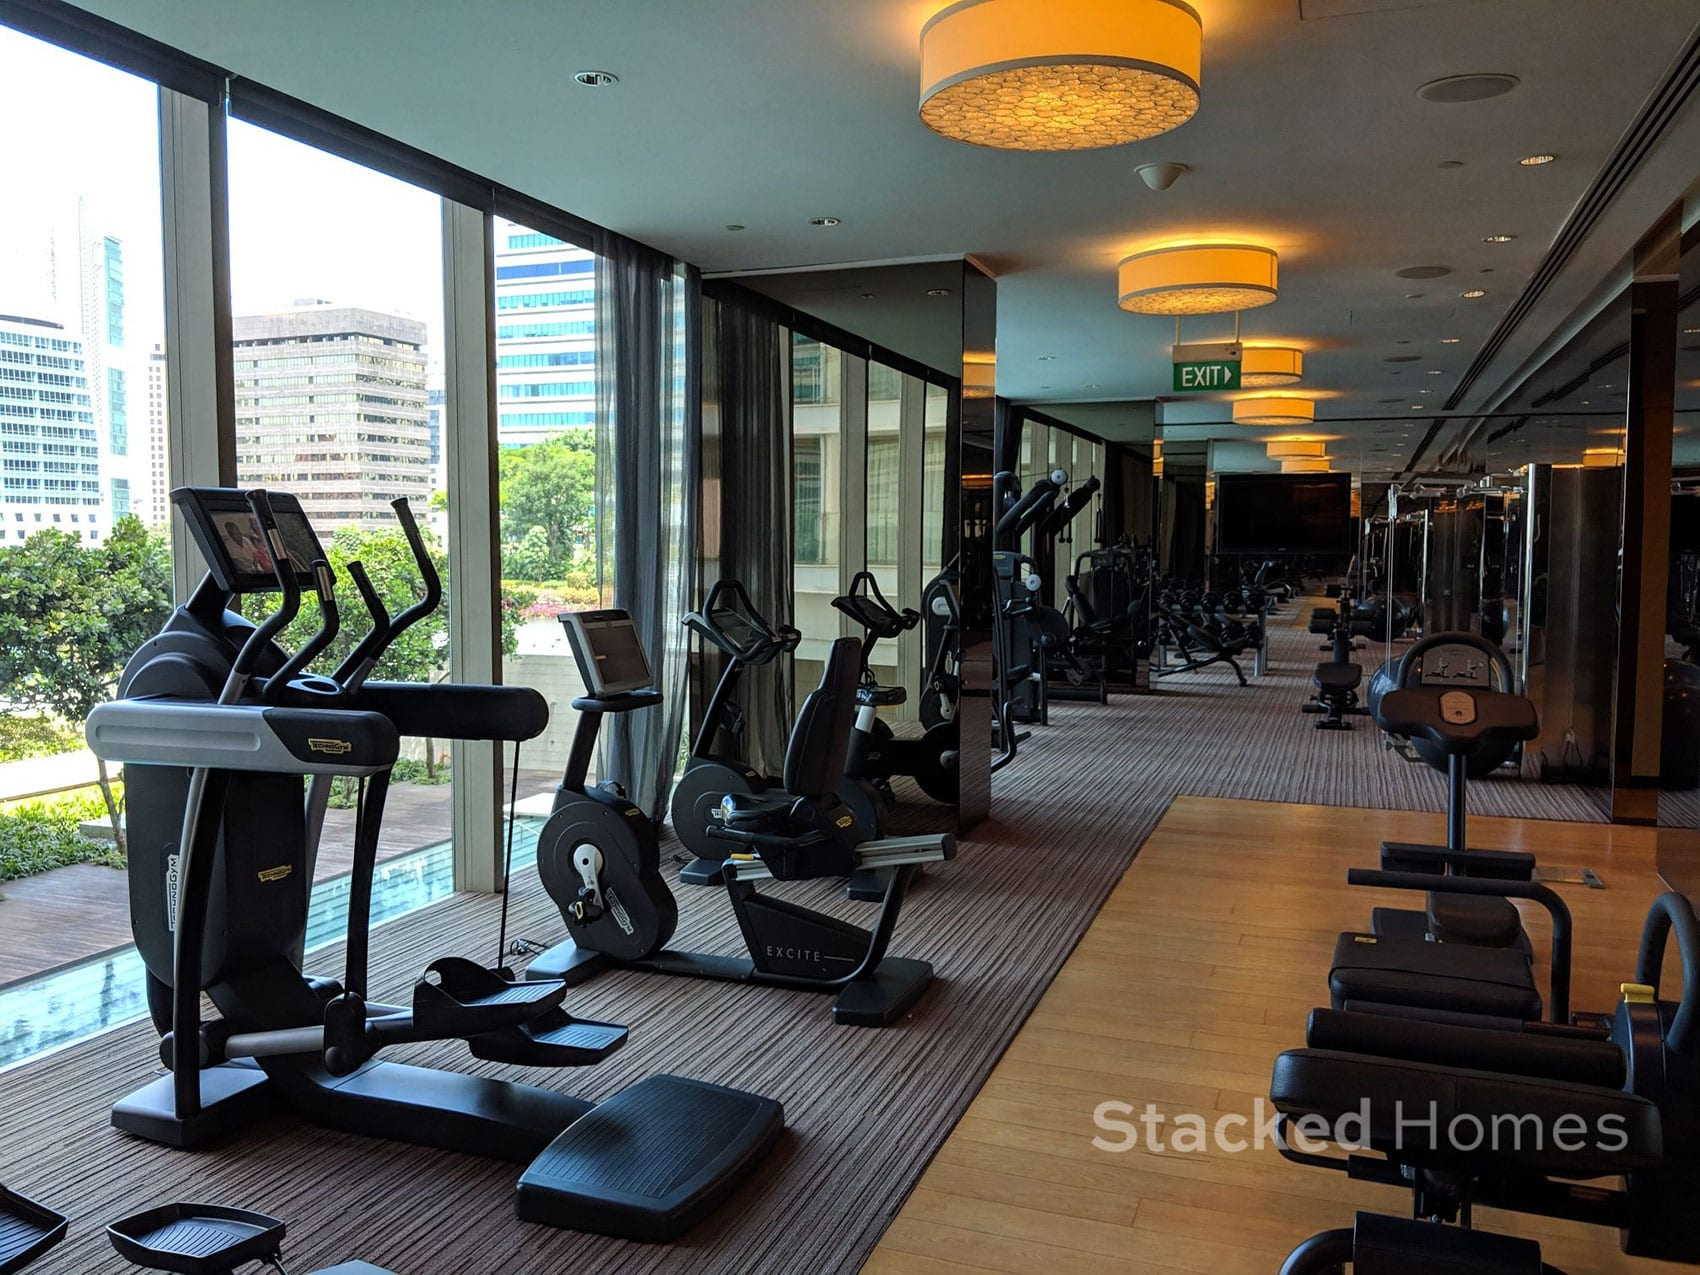 scotts square condo gym